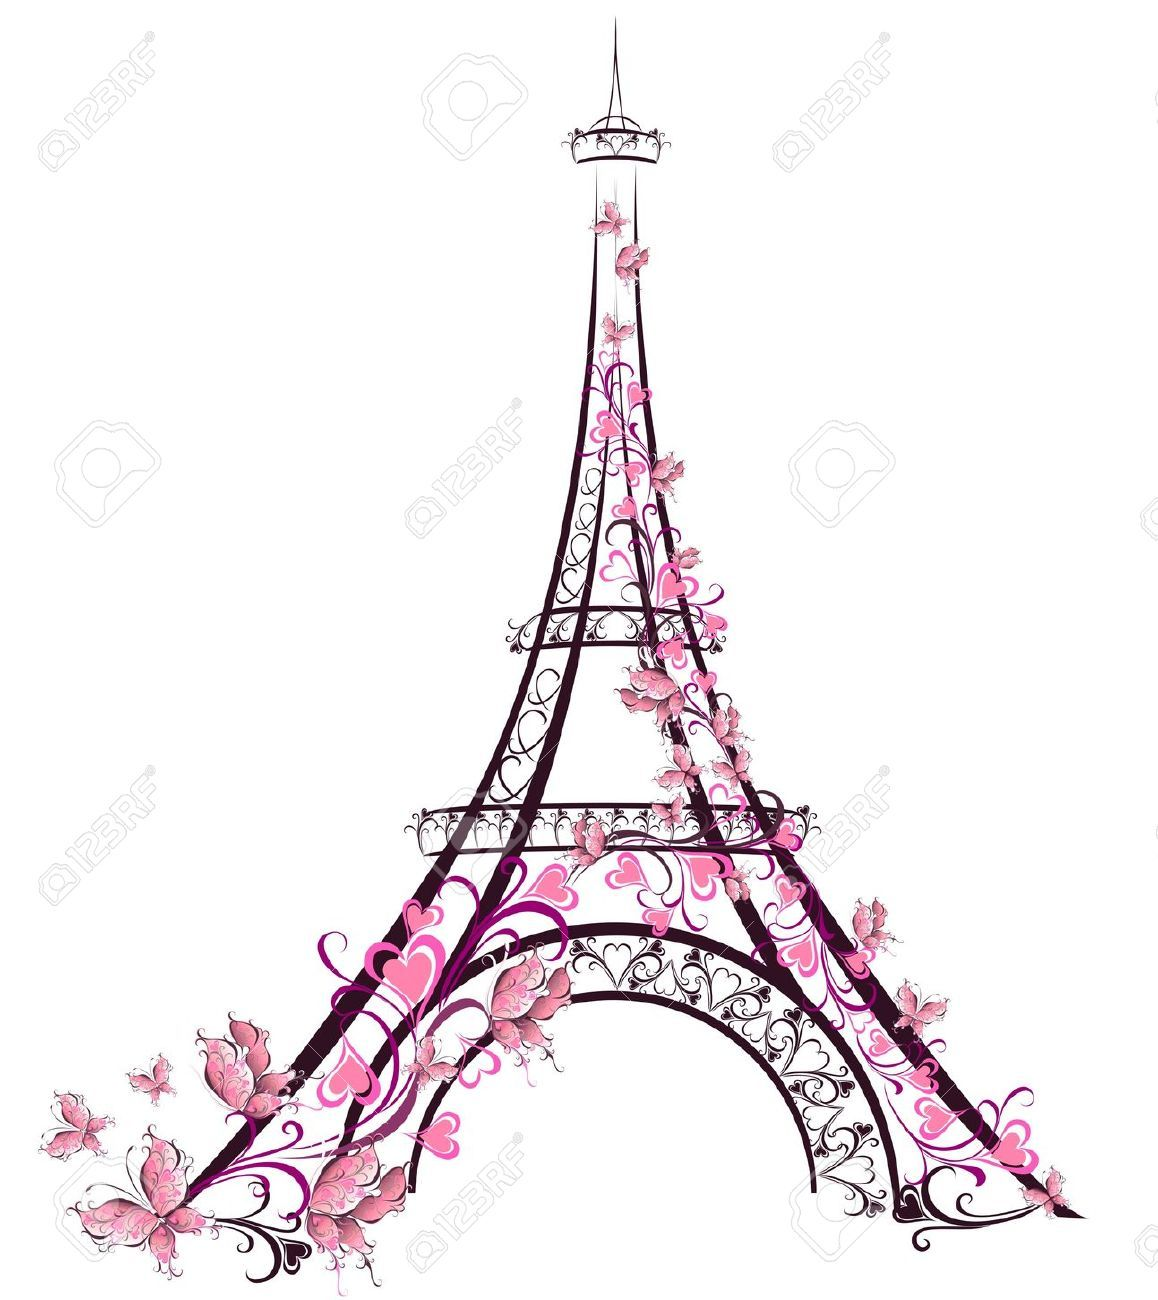 10,139 Eiffel Tower Stock Vector Illustration And Royalty.